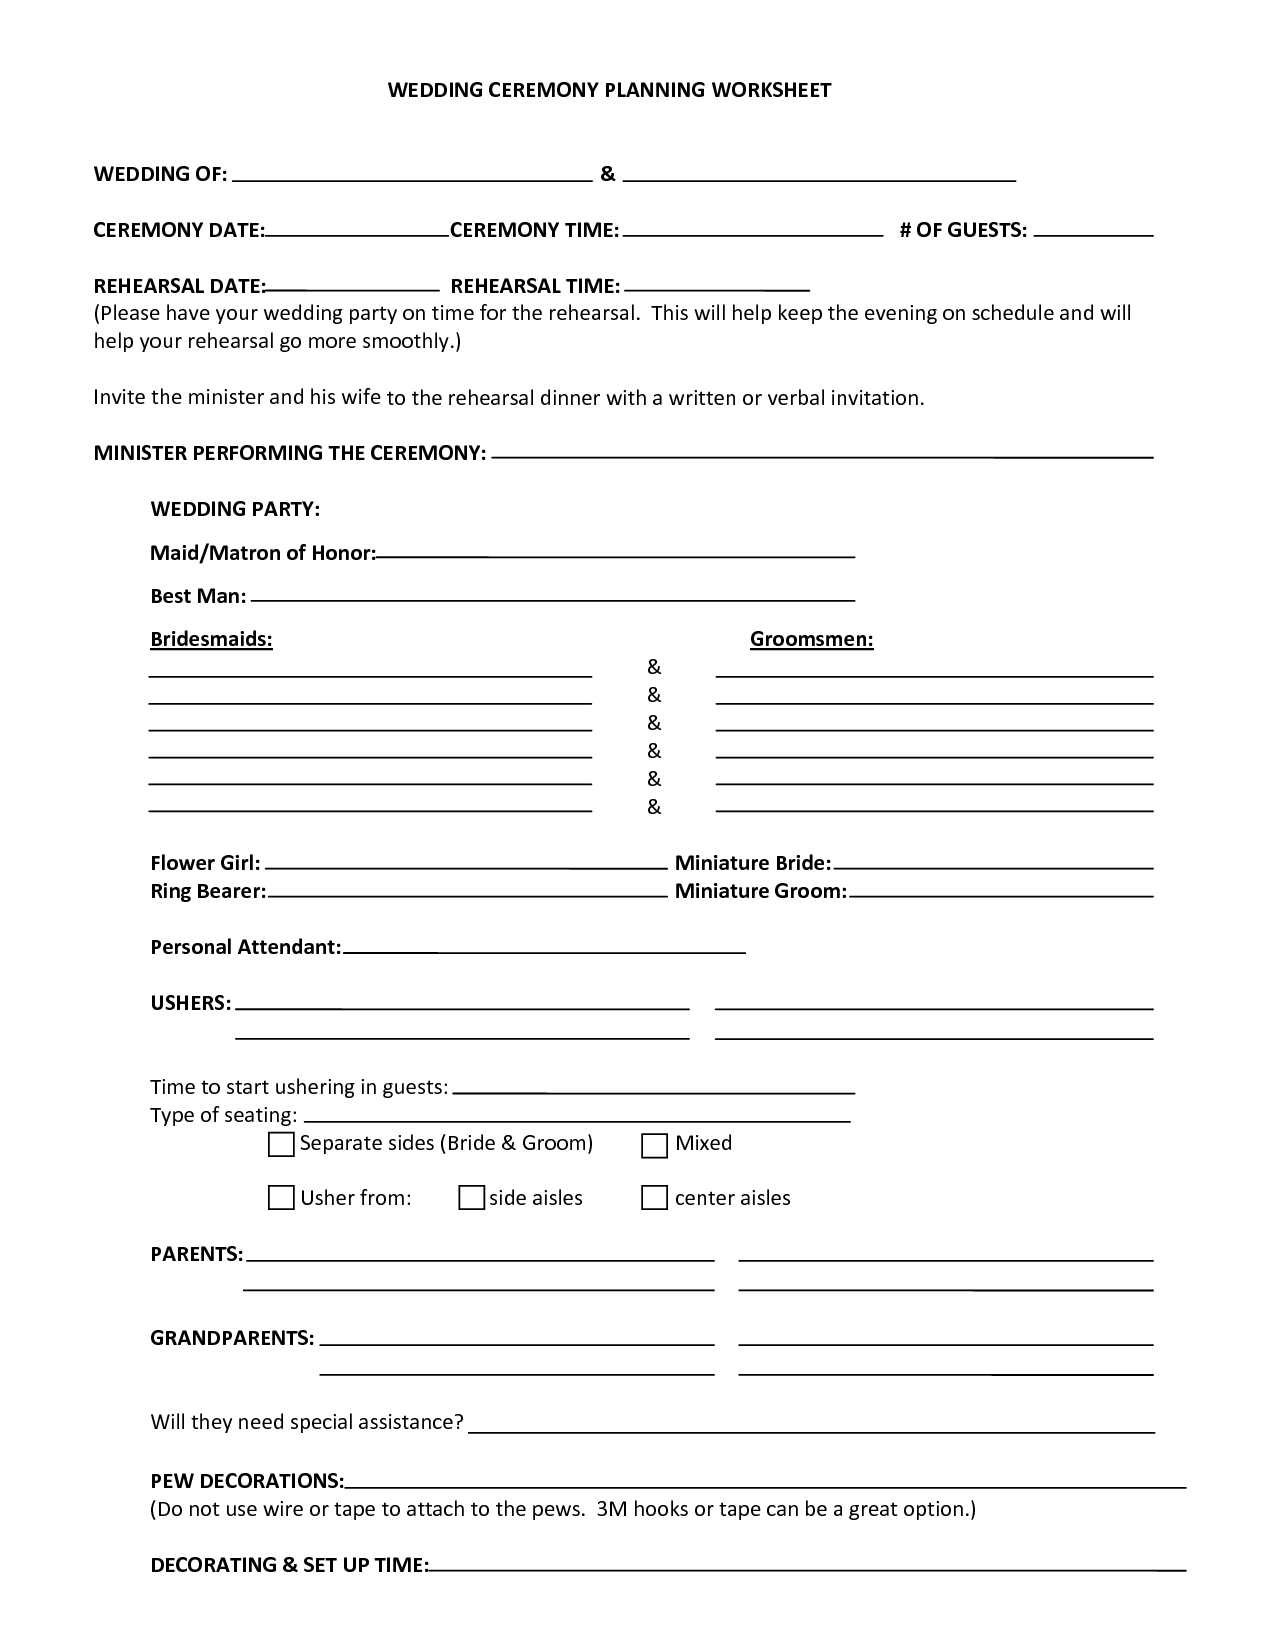 Worksheets Wedding Planning Worksheets wedding worksheets etame mibawa co worksheets